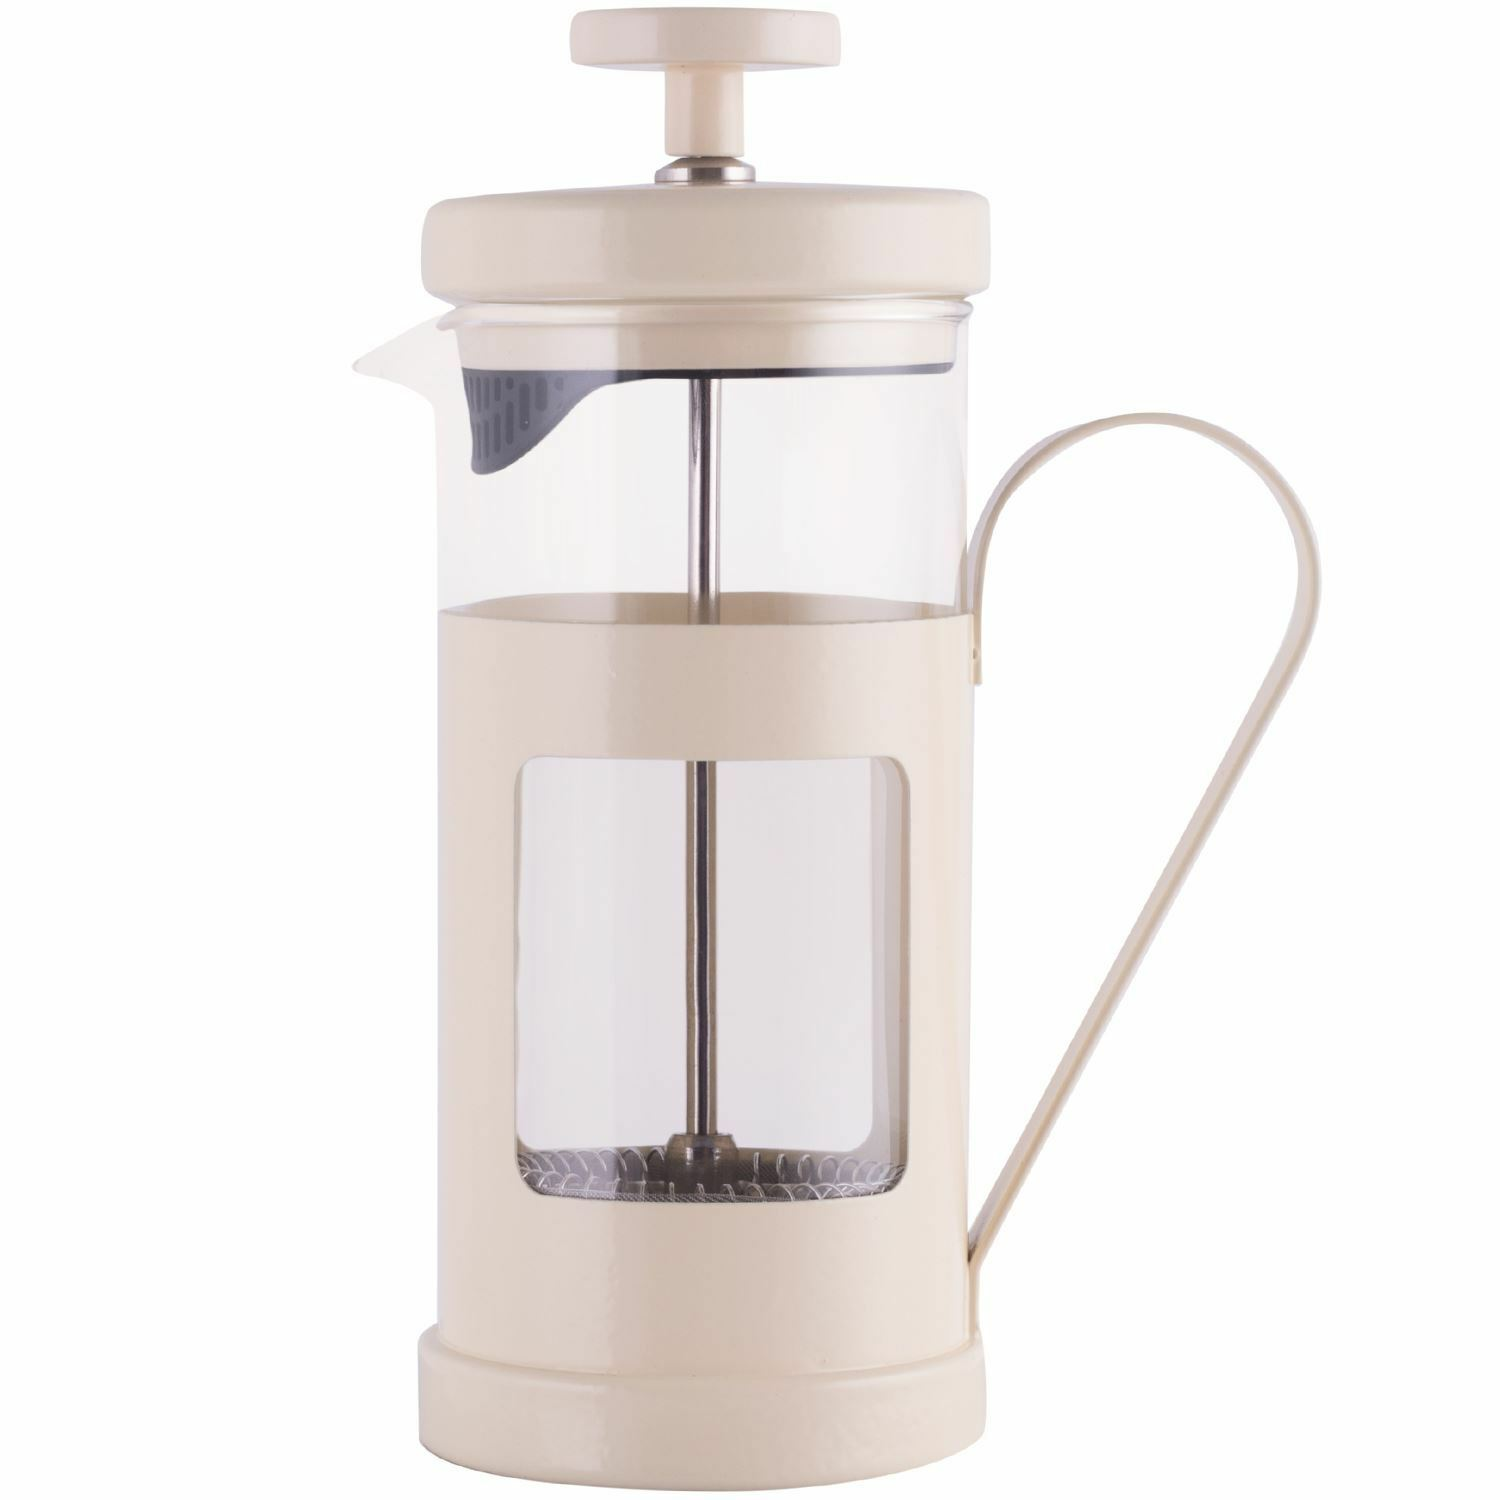 la cafetiere monaco 3 cup cream cafetiere coffee maker picclick uk. Black Bedroom Furniture Sets. Home Design Ideas